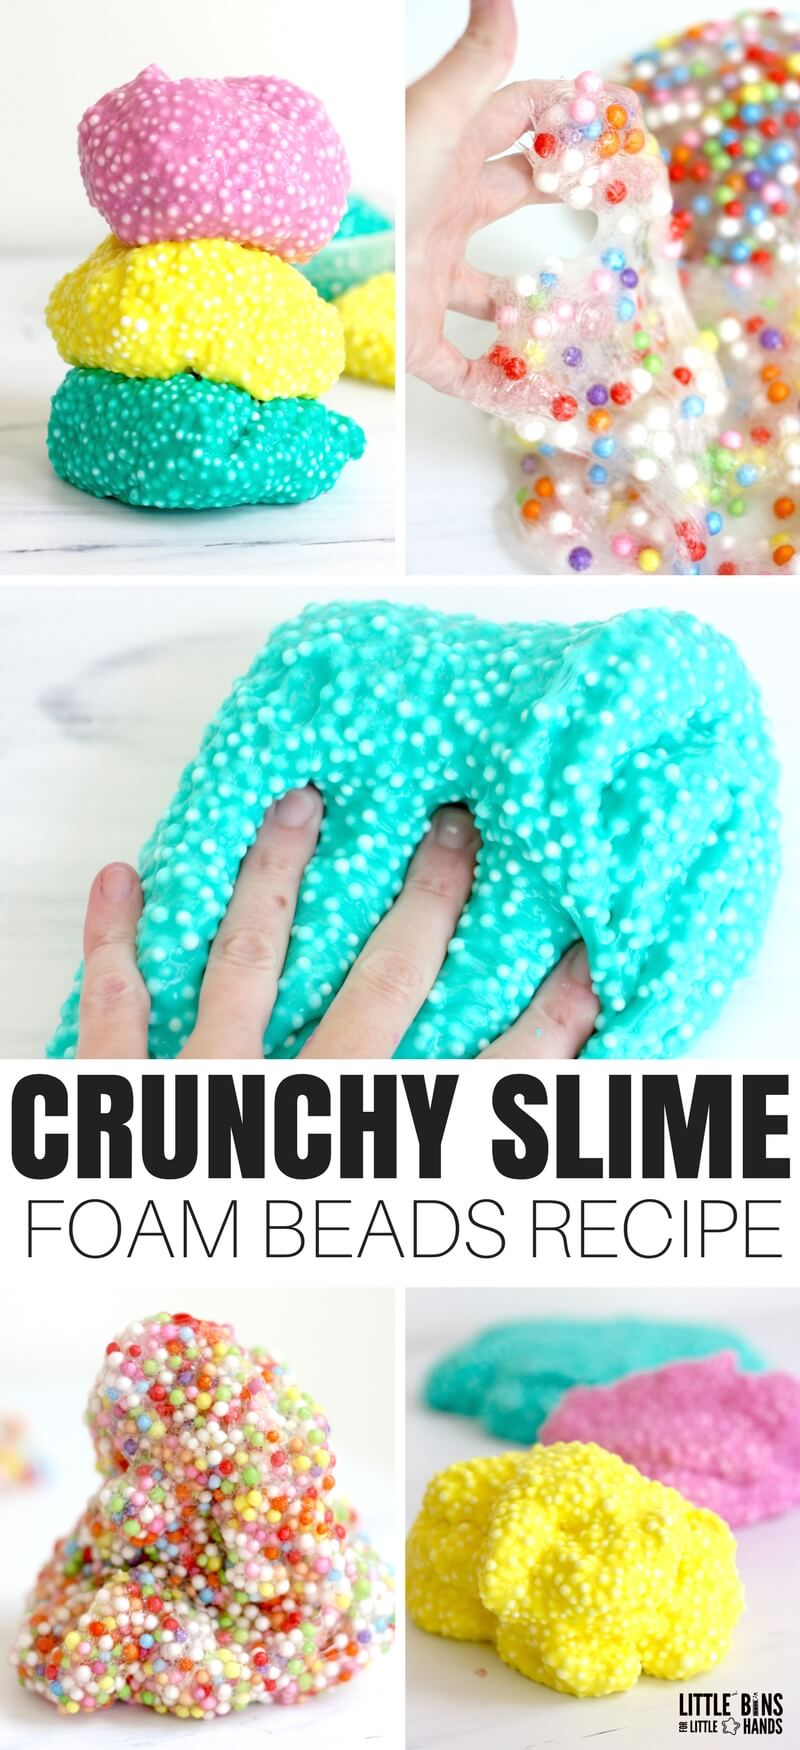 How To Make Slime Crunchy